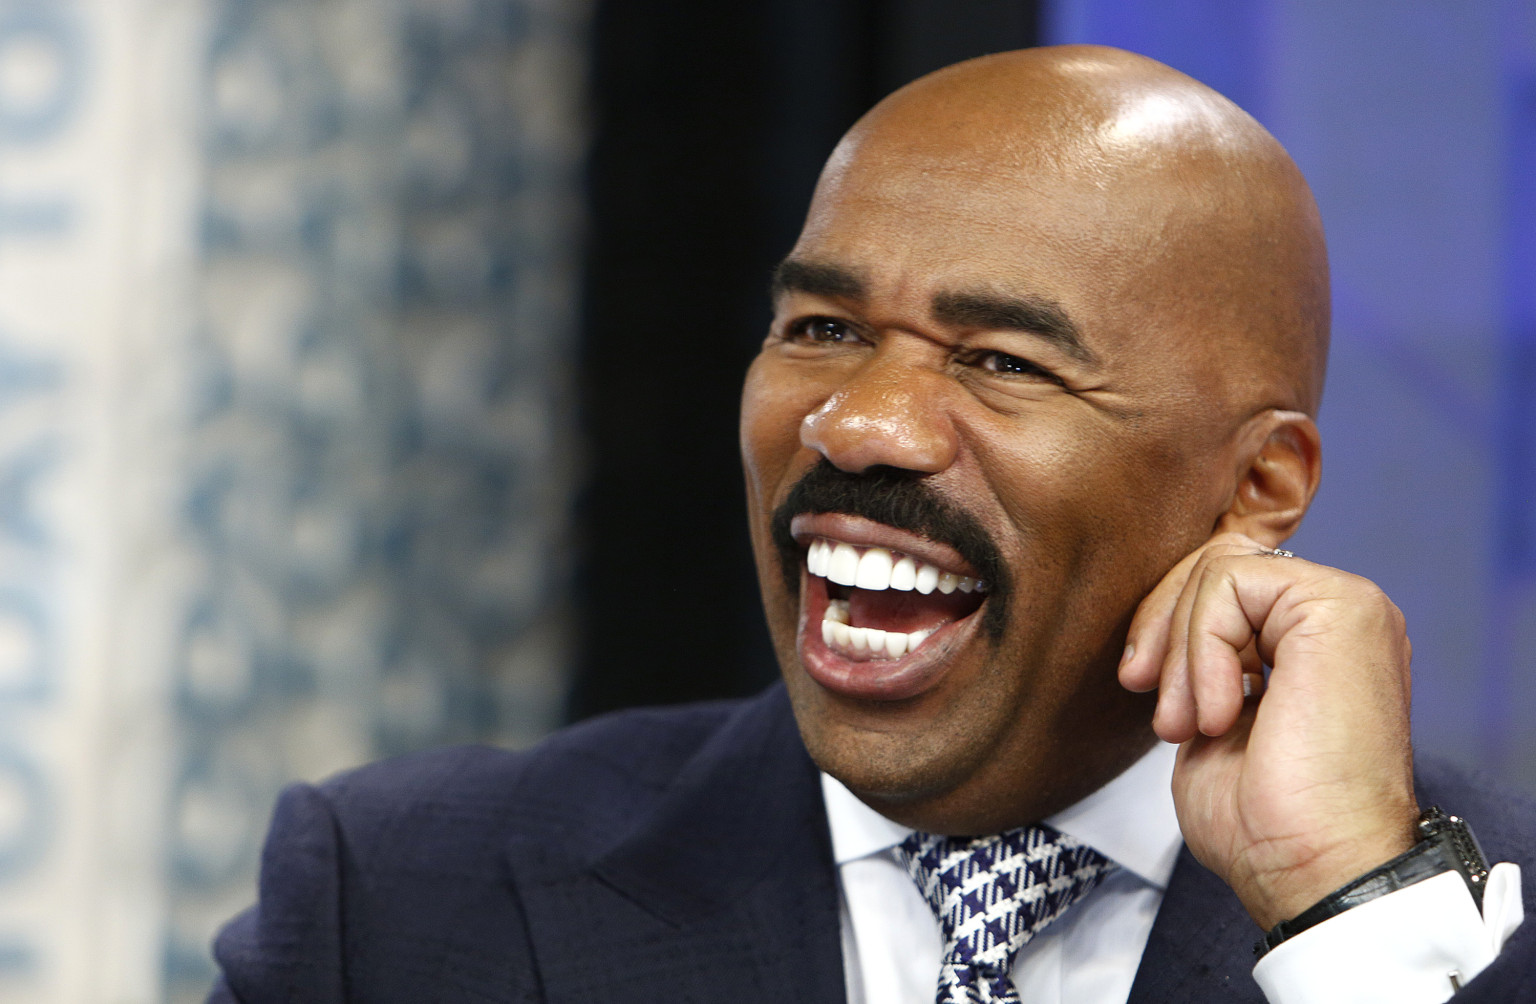 Steve Harvey's investment in cable networks has fans hopeful